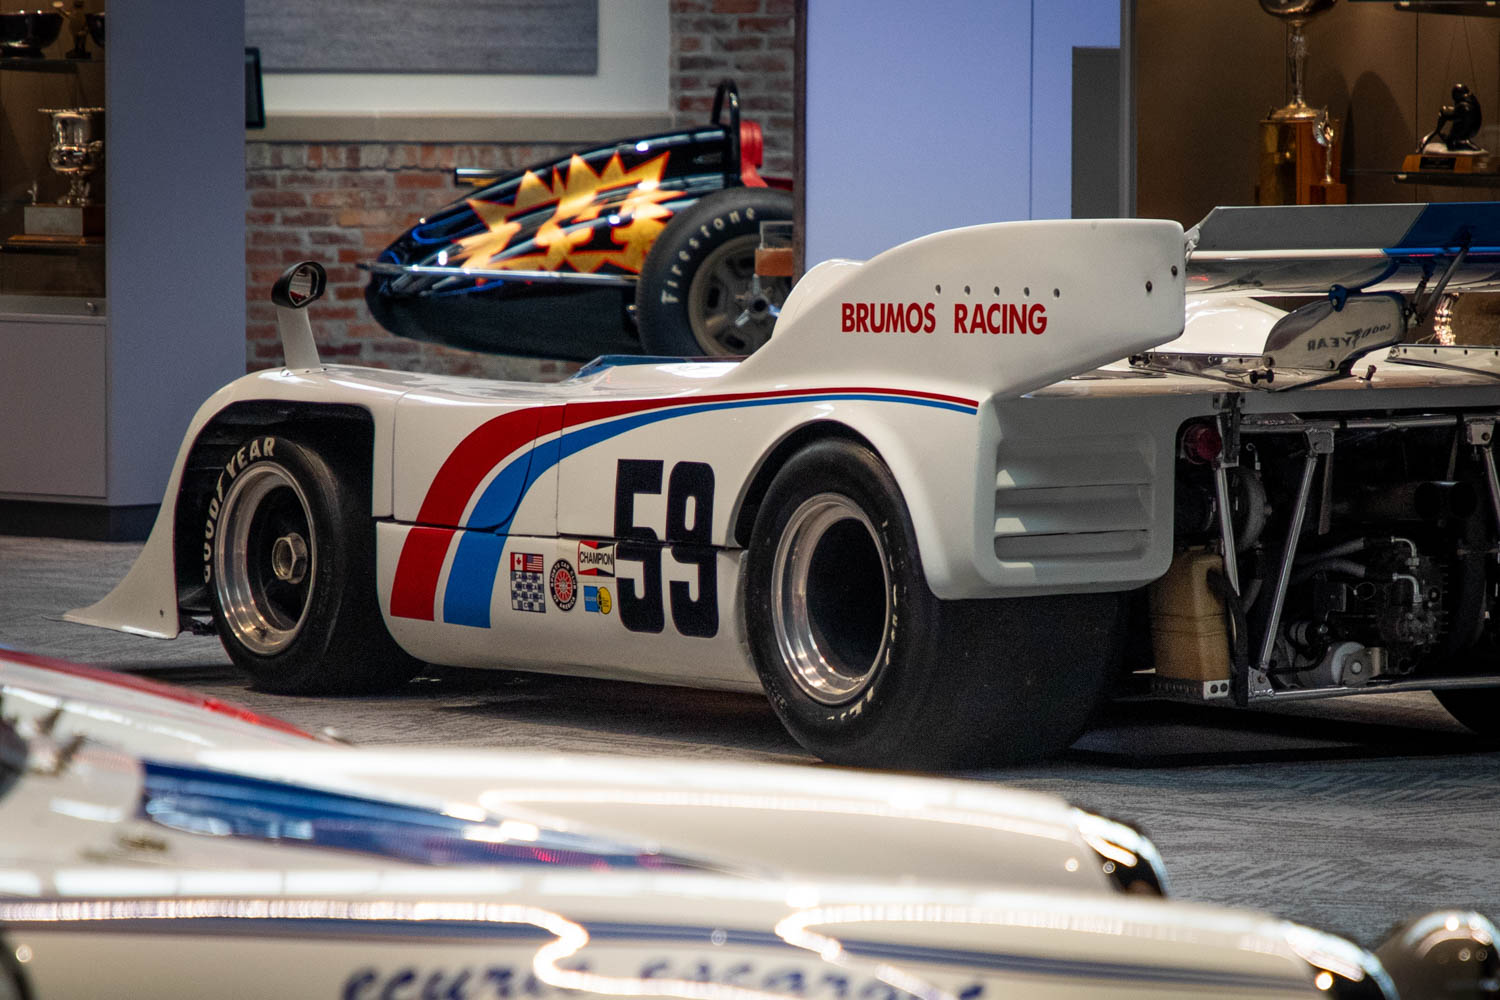 This 1972 Porsche 917-10 Can Am racer was the first car to feature the trademark blue-and-red Brumos sweeps.